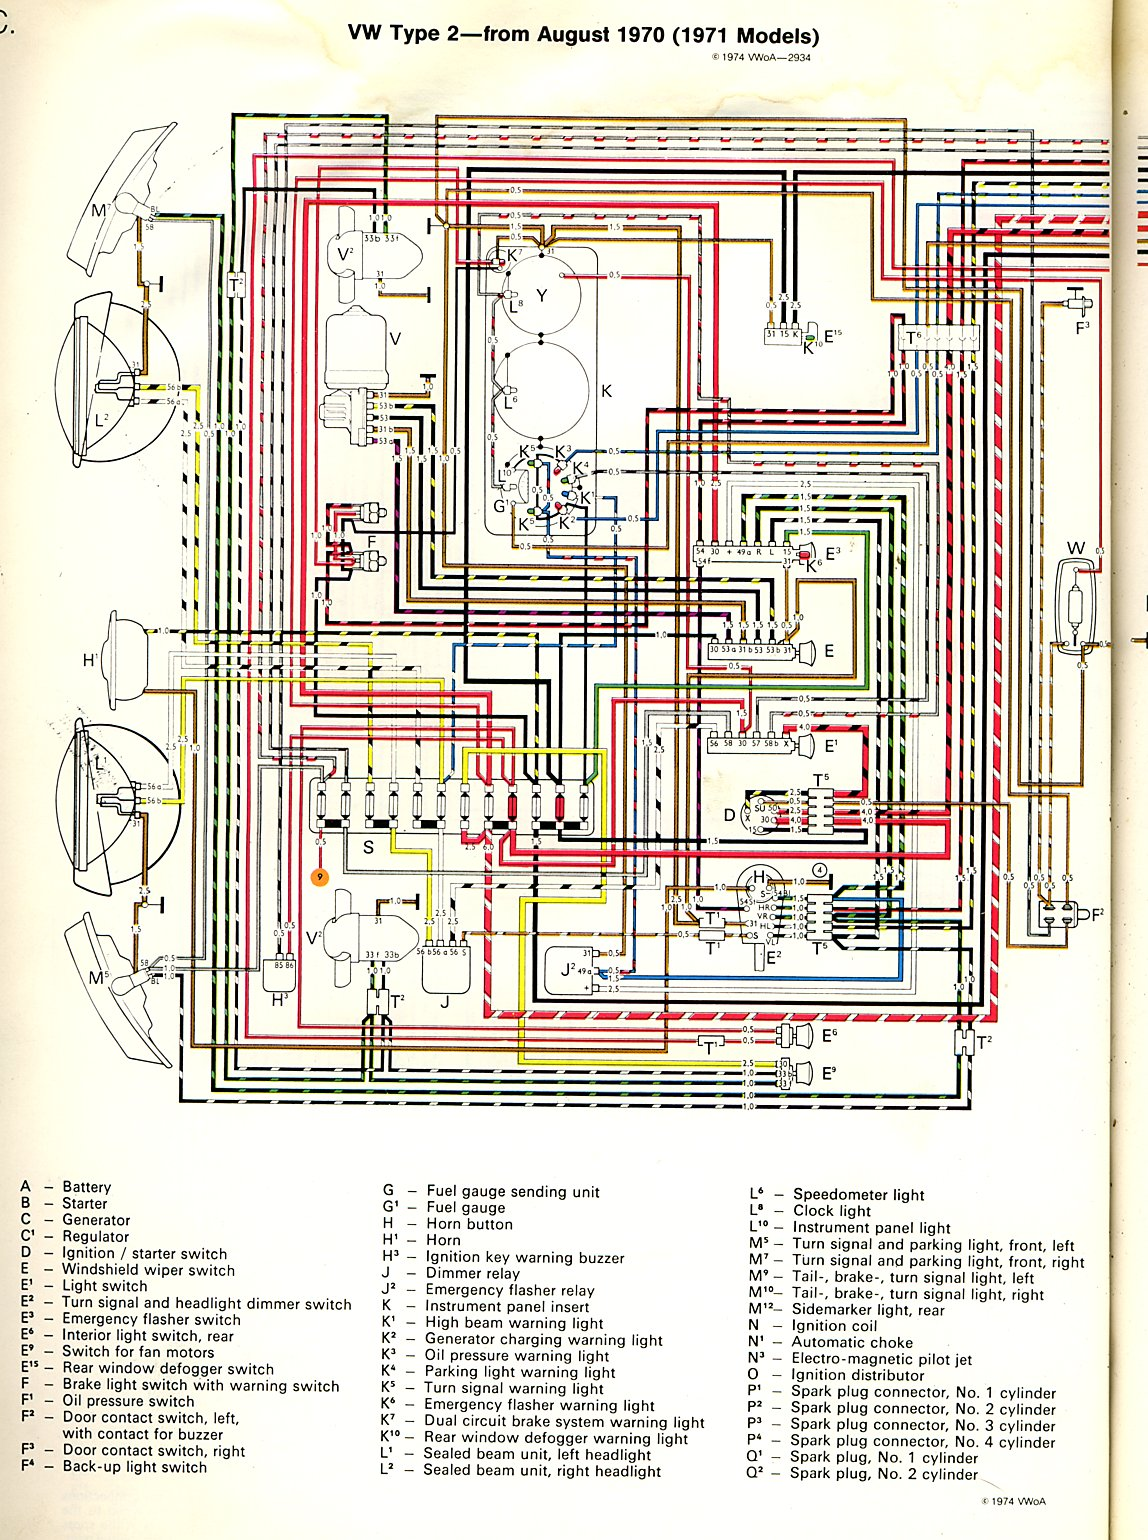 1971 Beetle Fuse Box Diagram Ktm 85 Wiring Diagram Kayu